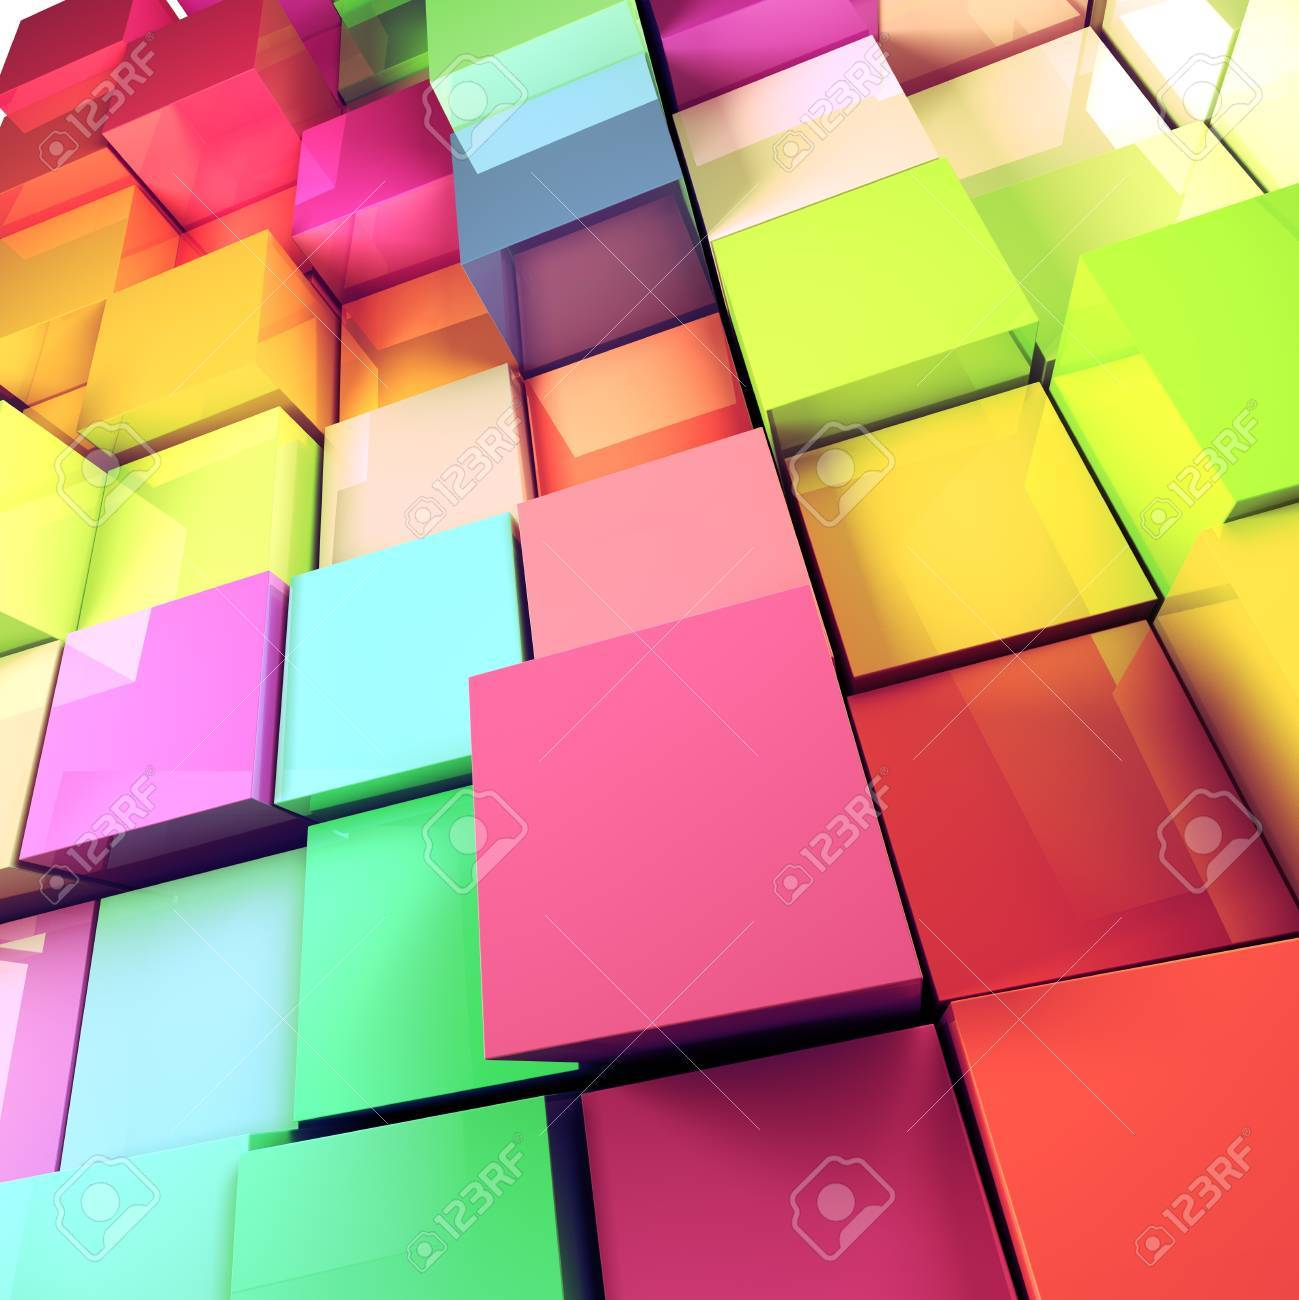 Abstract 3d colored cubes background - 18586163